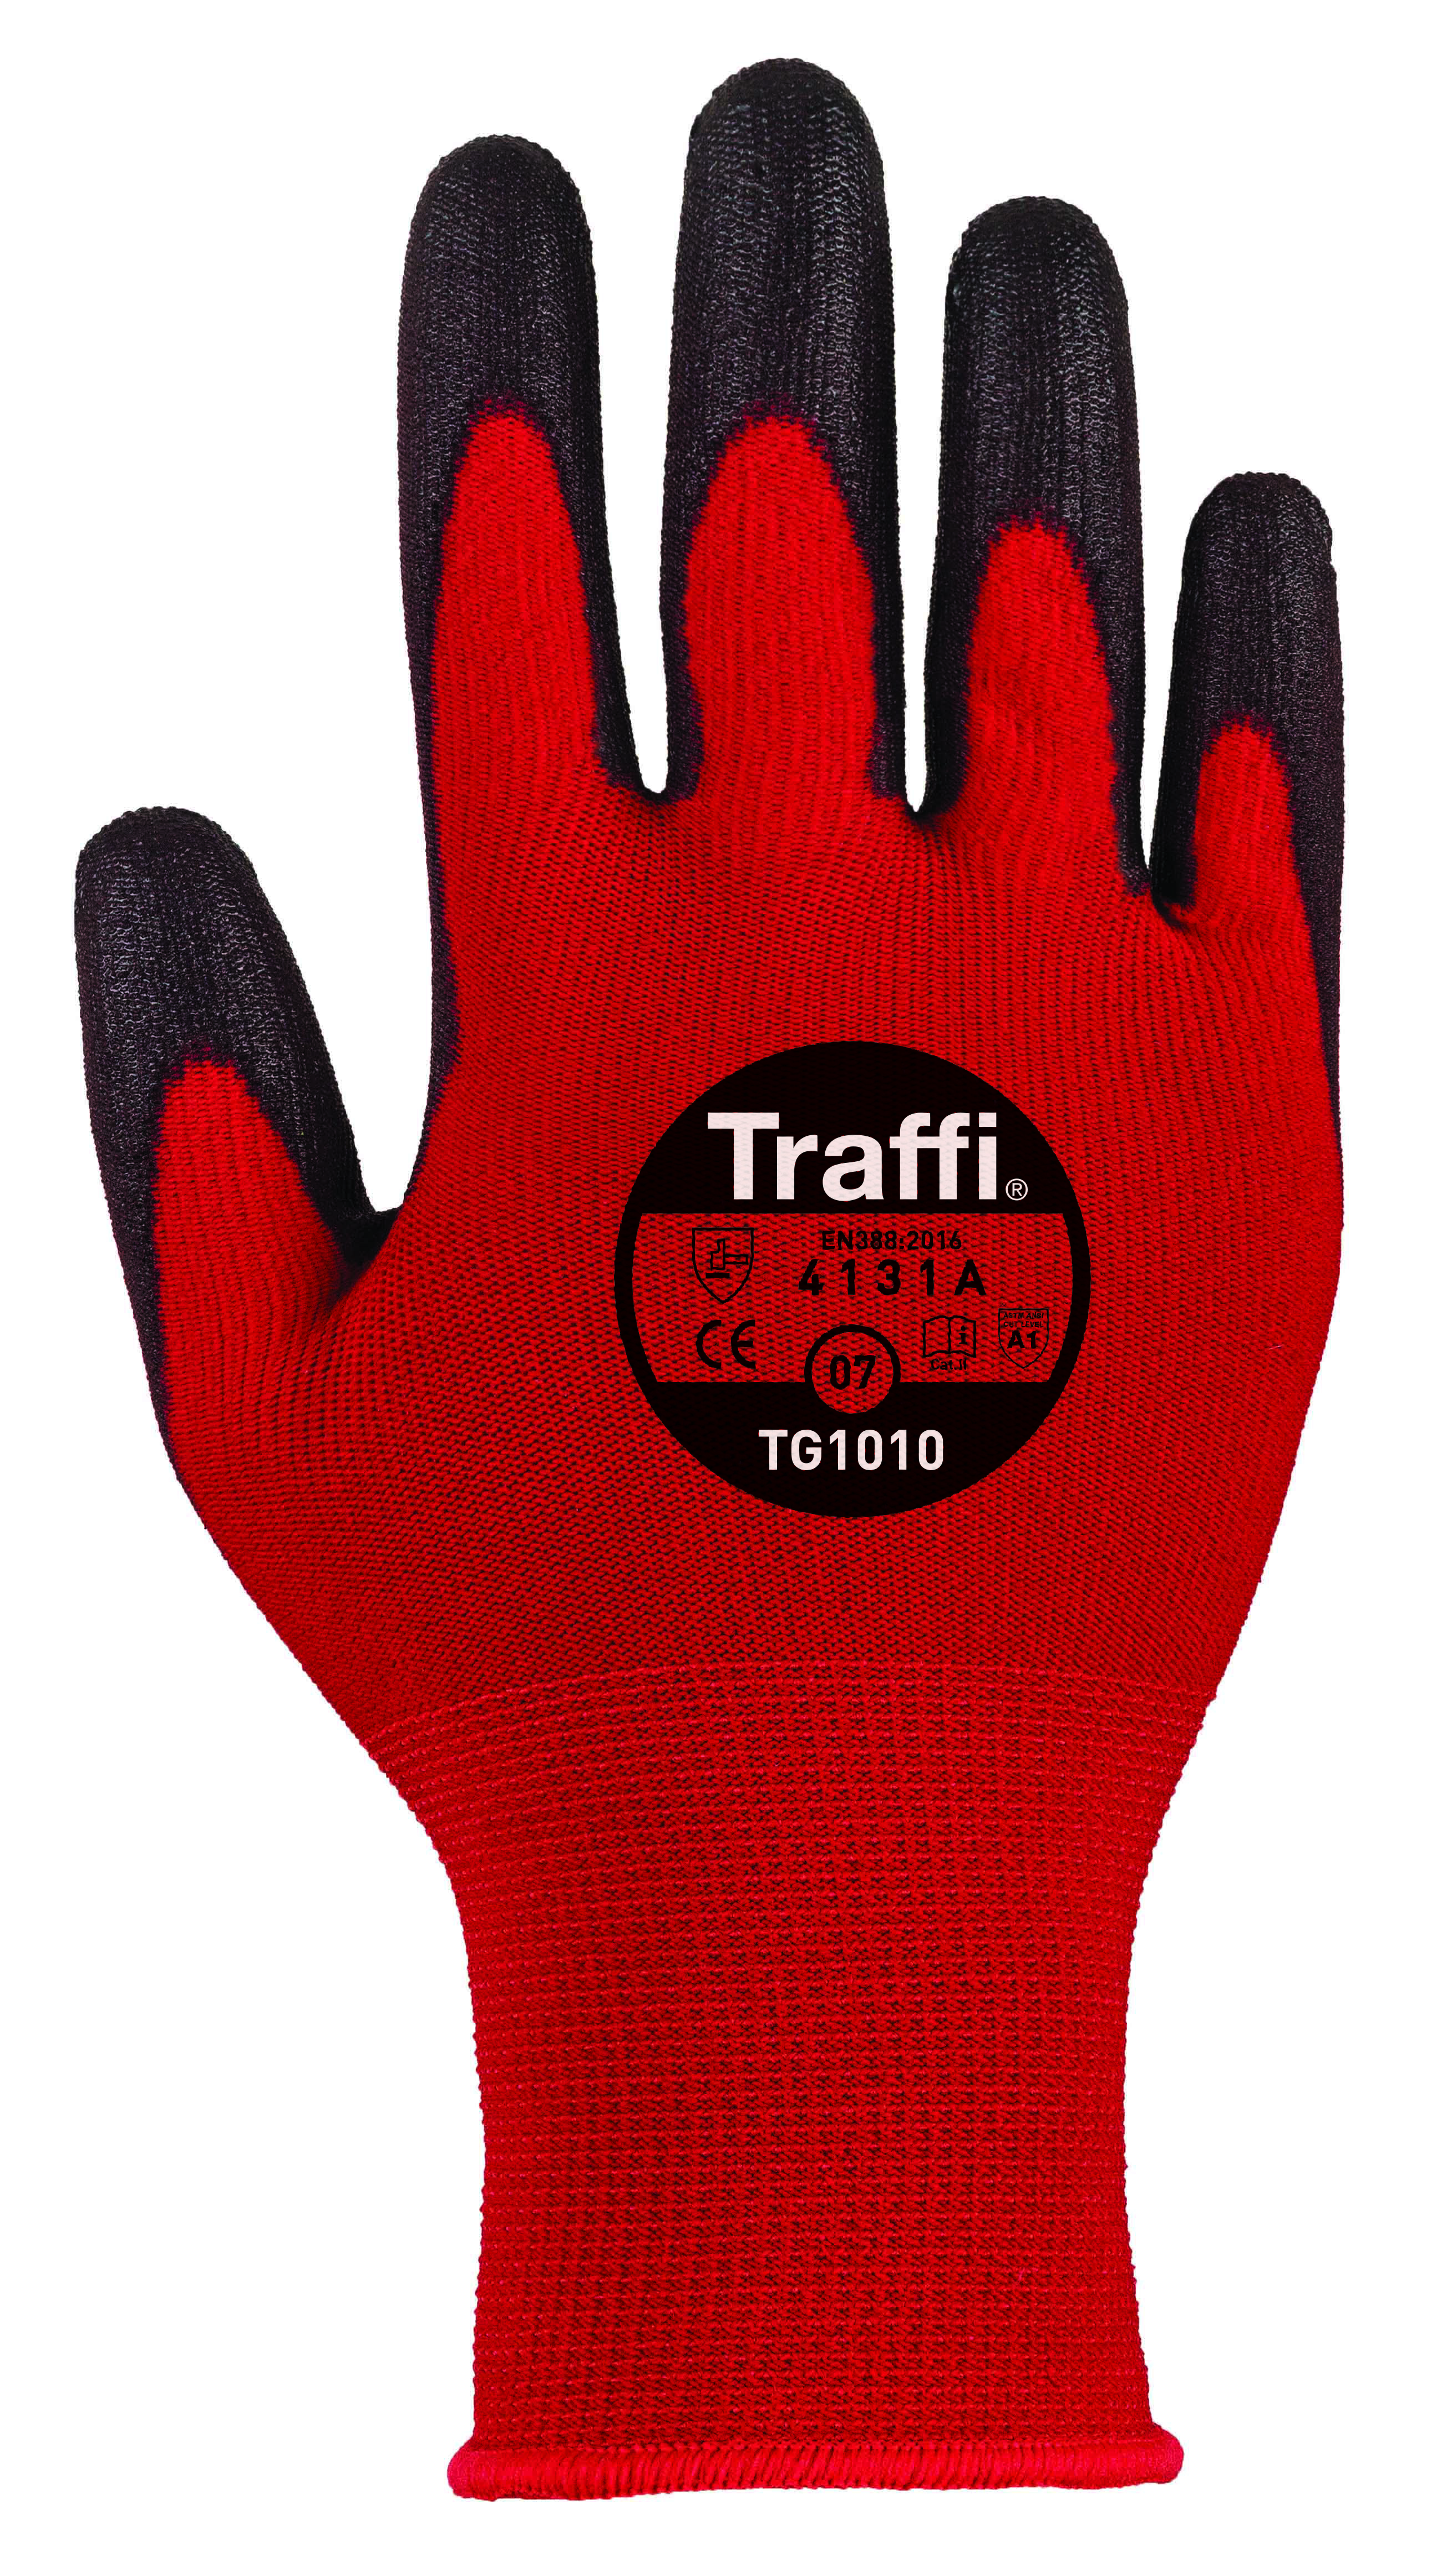 Traffiglove Tg1010-10 (pack Of 10 Pairs)